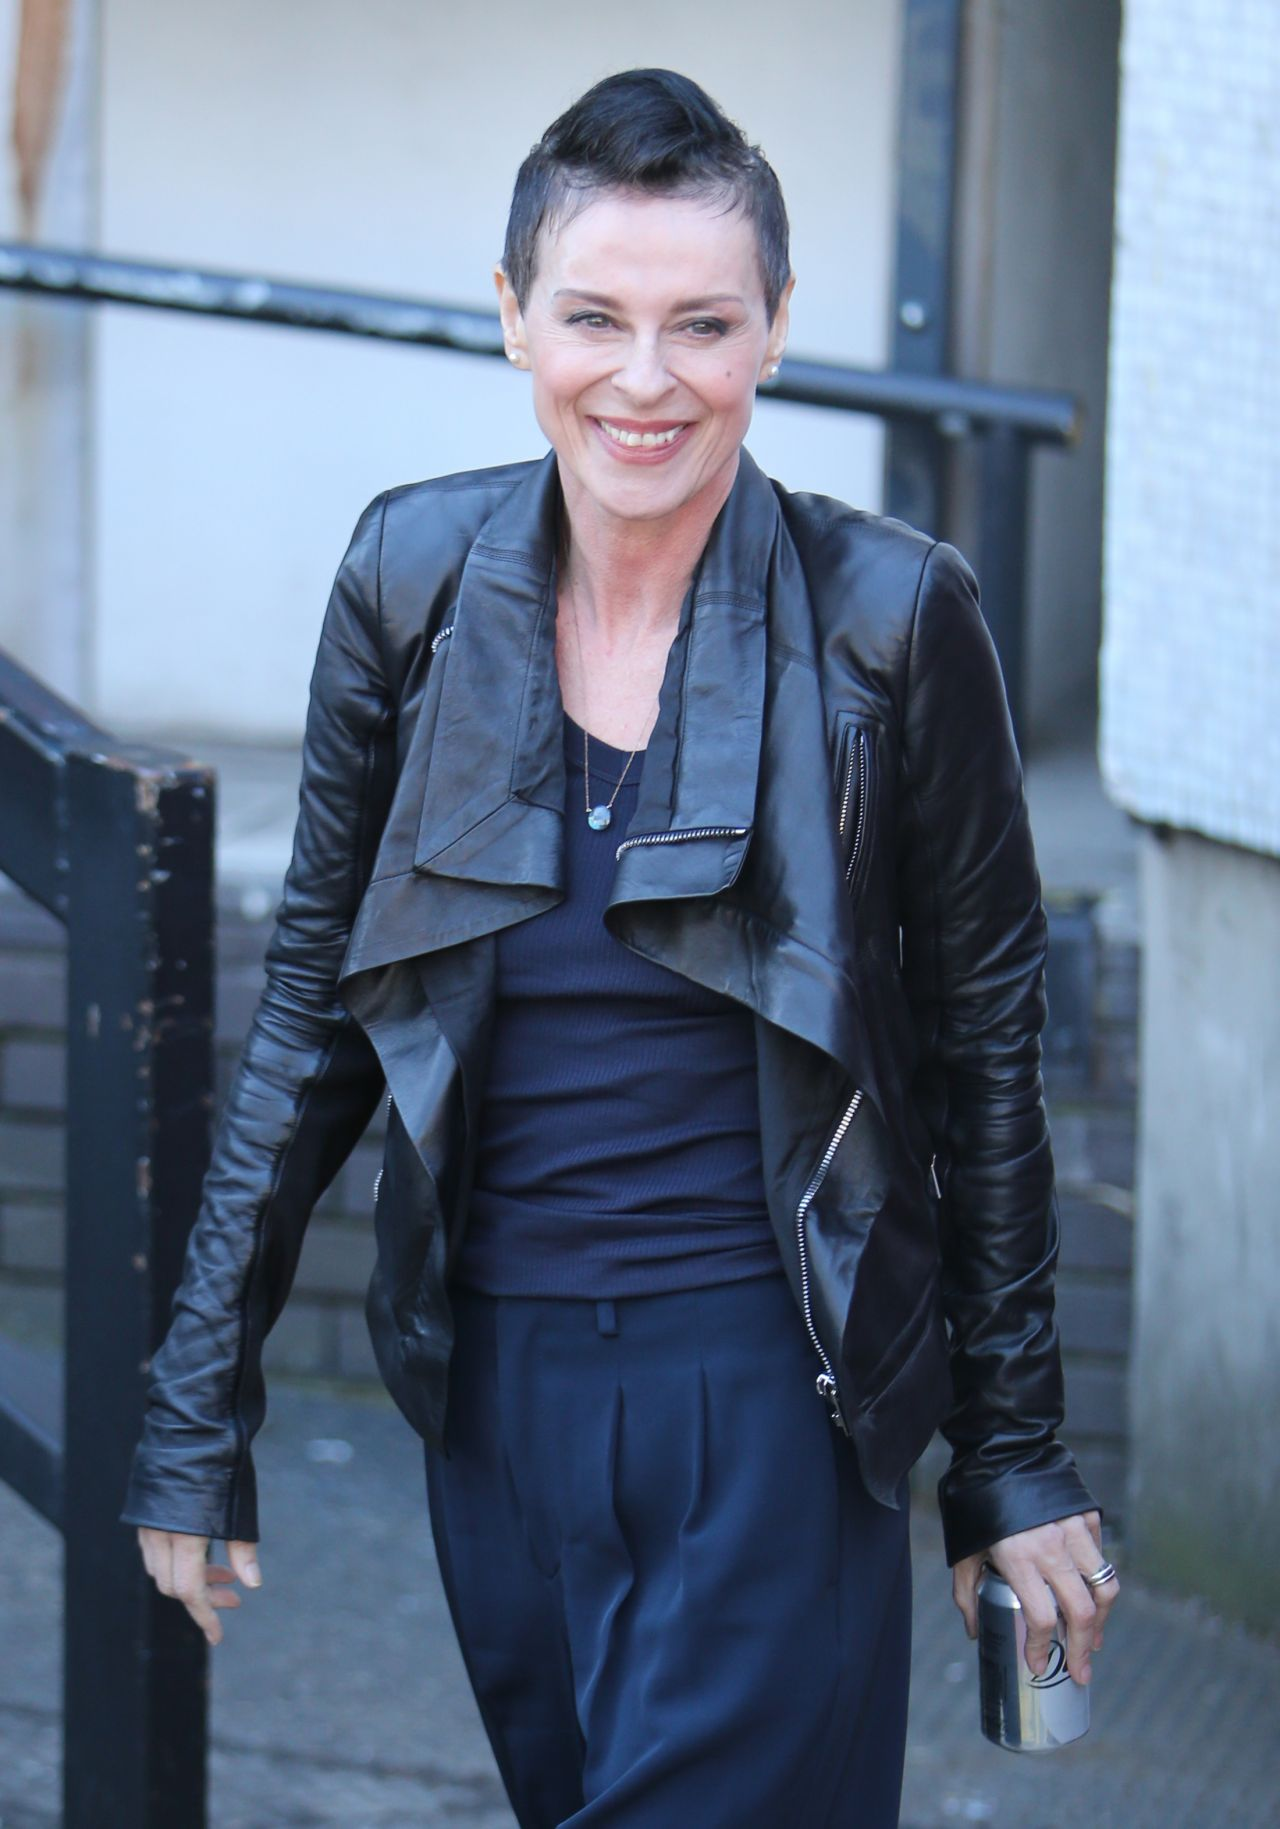 lisa stansfield - photo #47